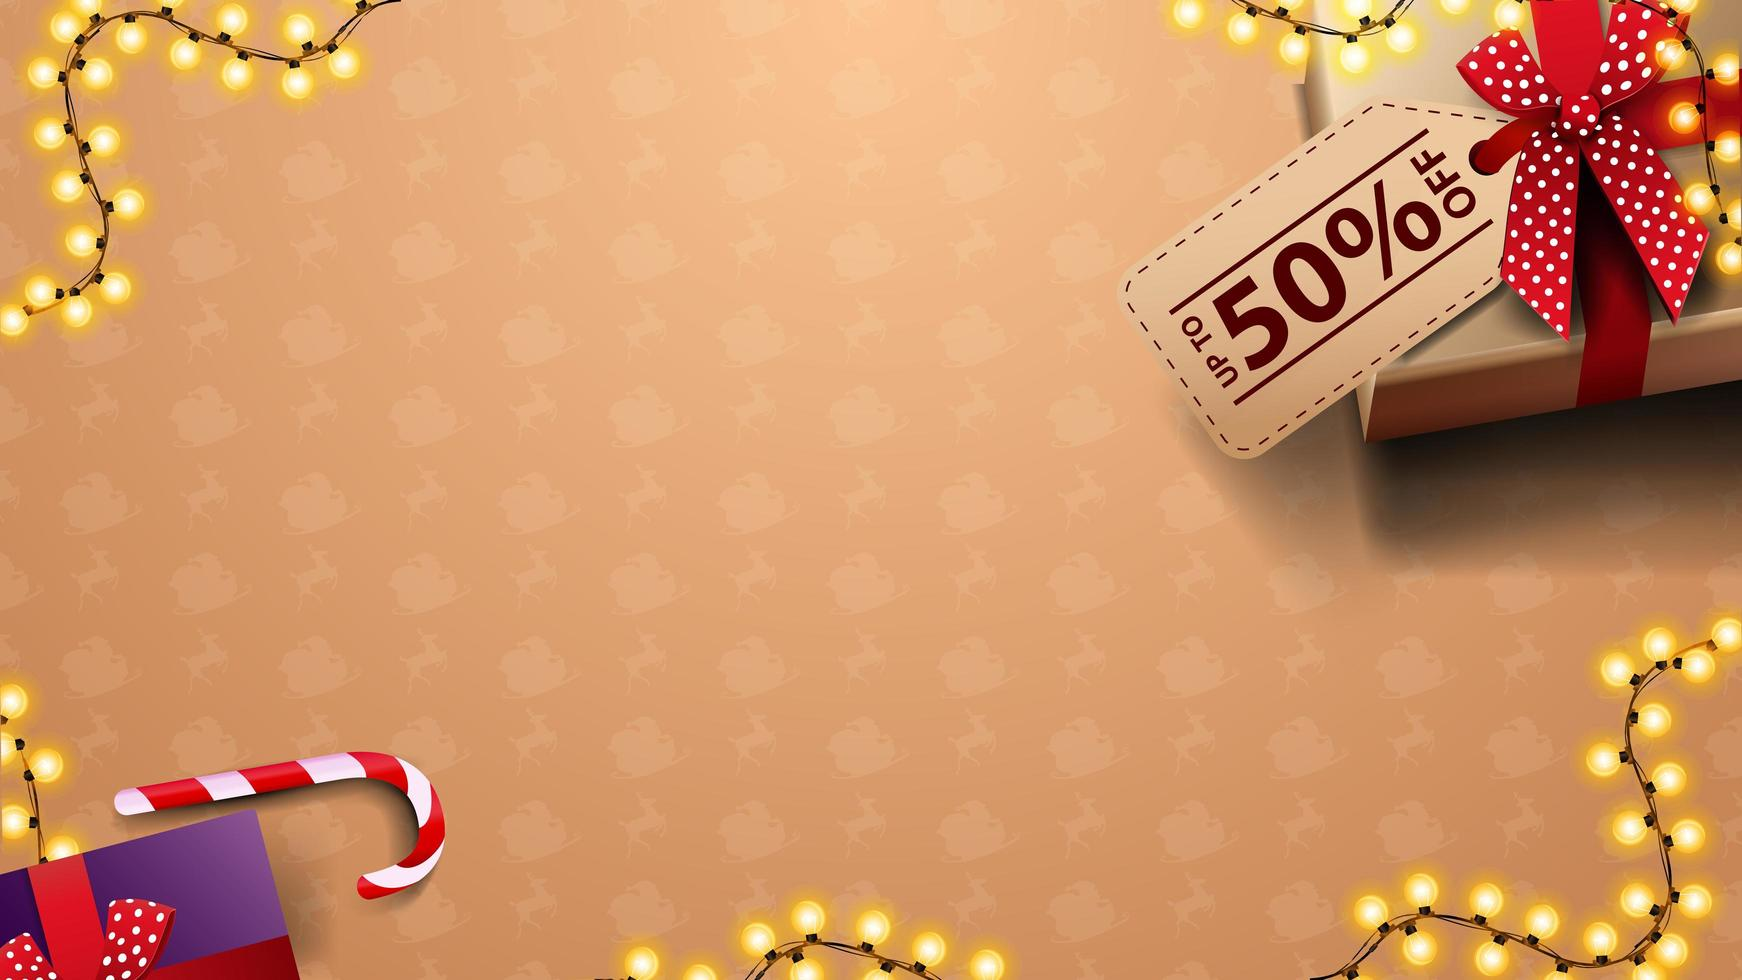 Christmas template for your arts with presents, price tag and garland, top view vector